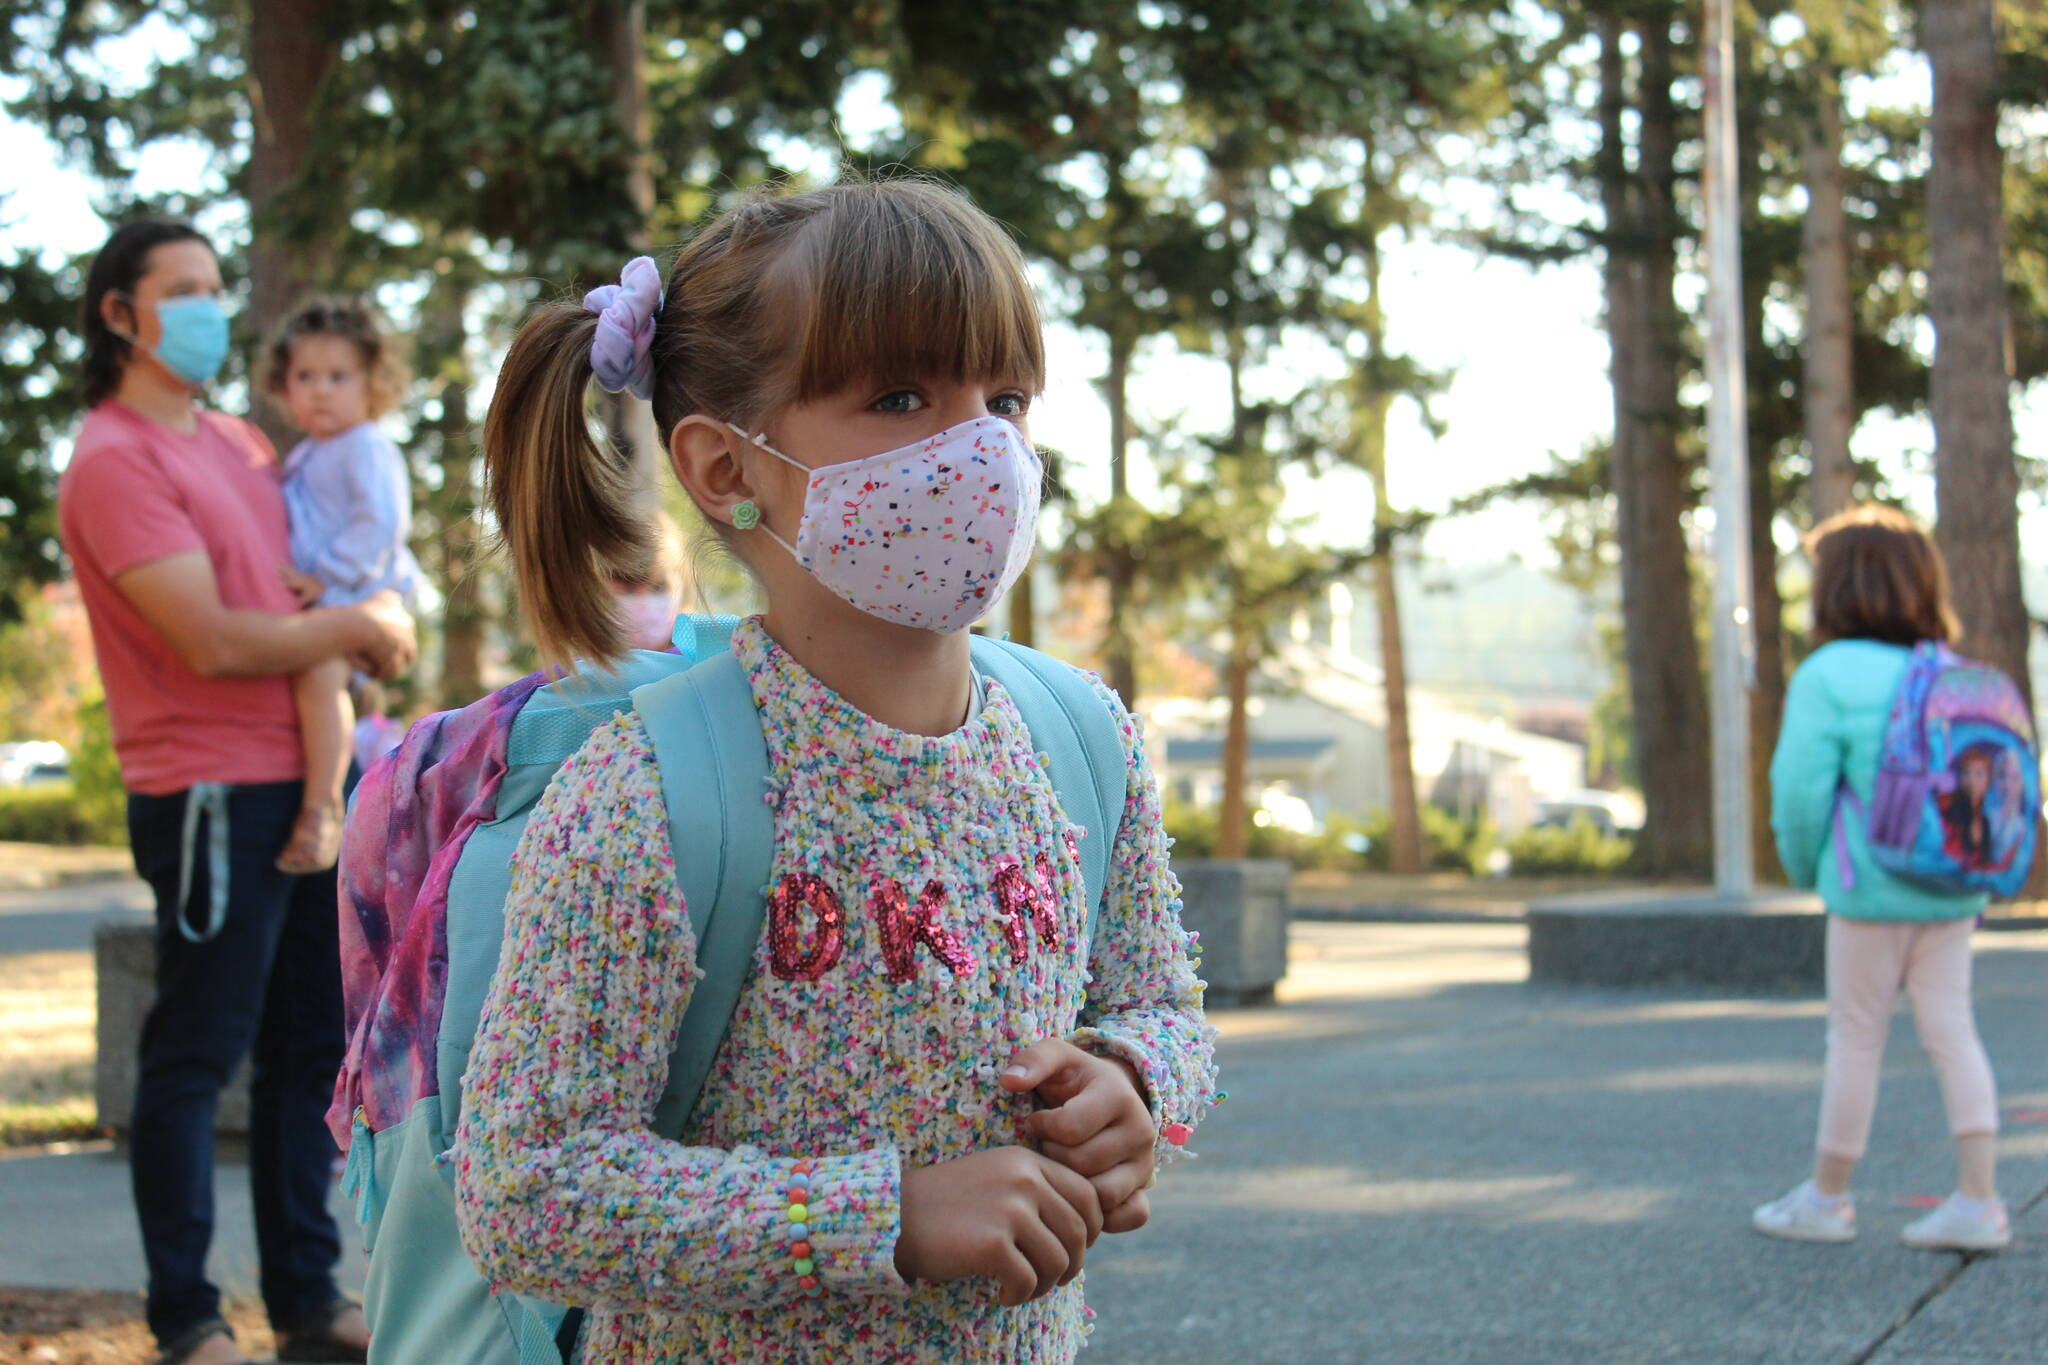 Elizabeth Richards sets off to find her new classroom. (Photo by Karina Andrew/Whidbey News-Times)